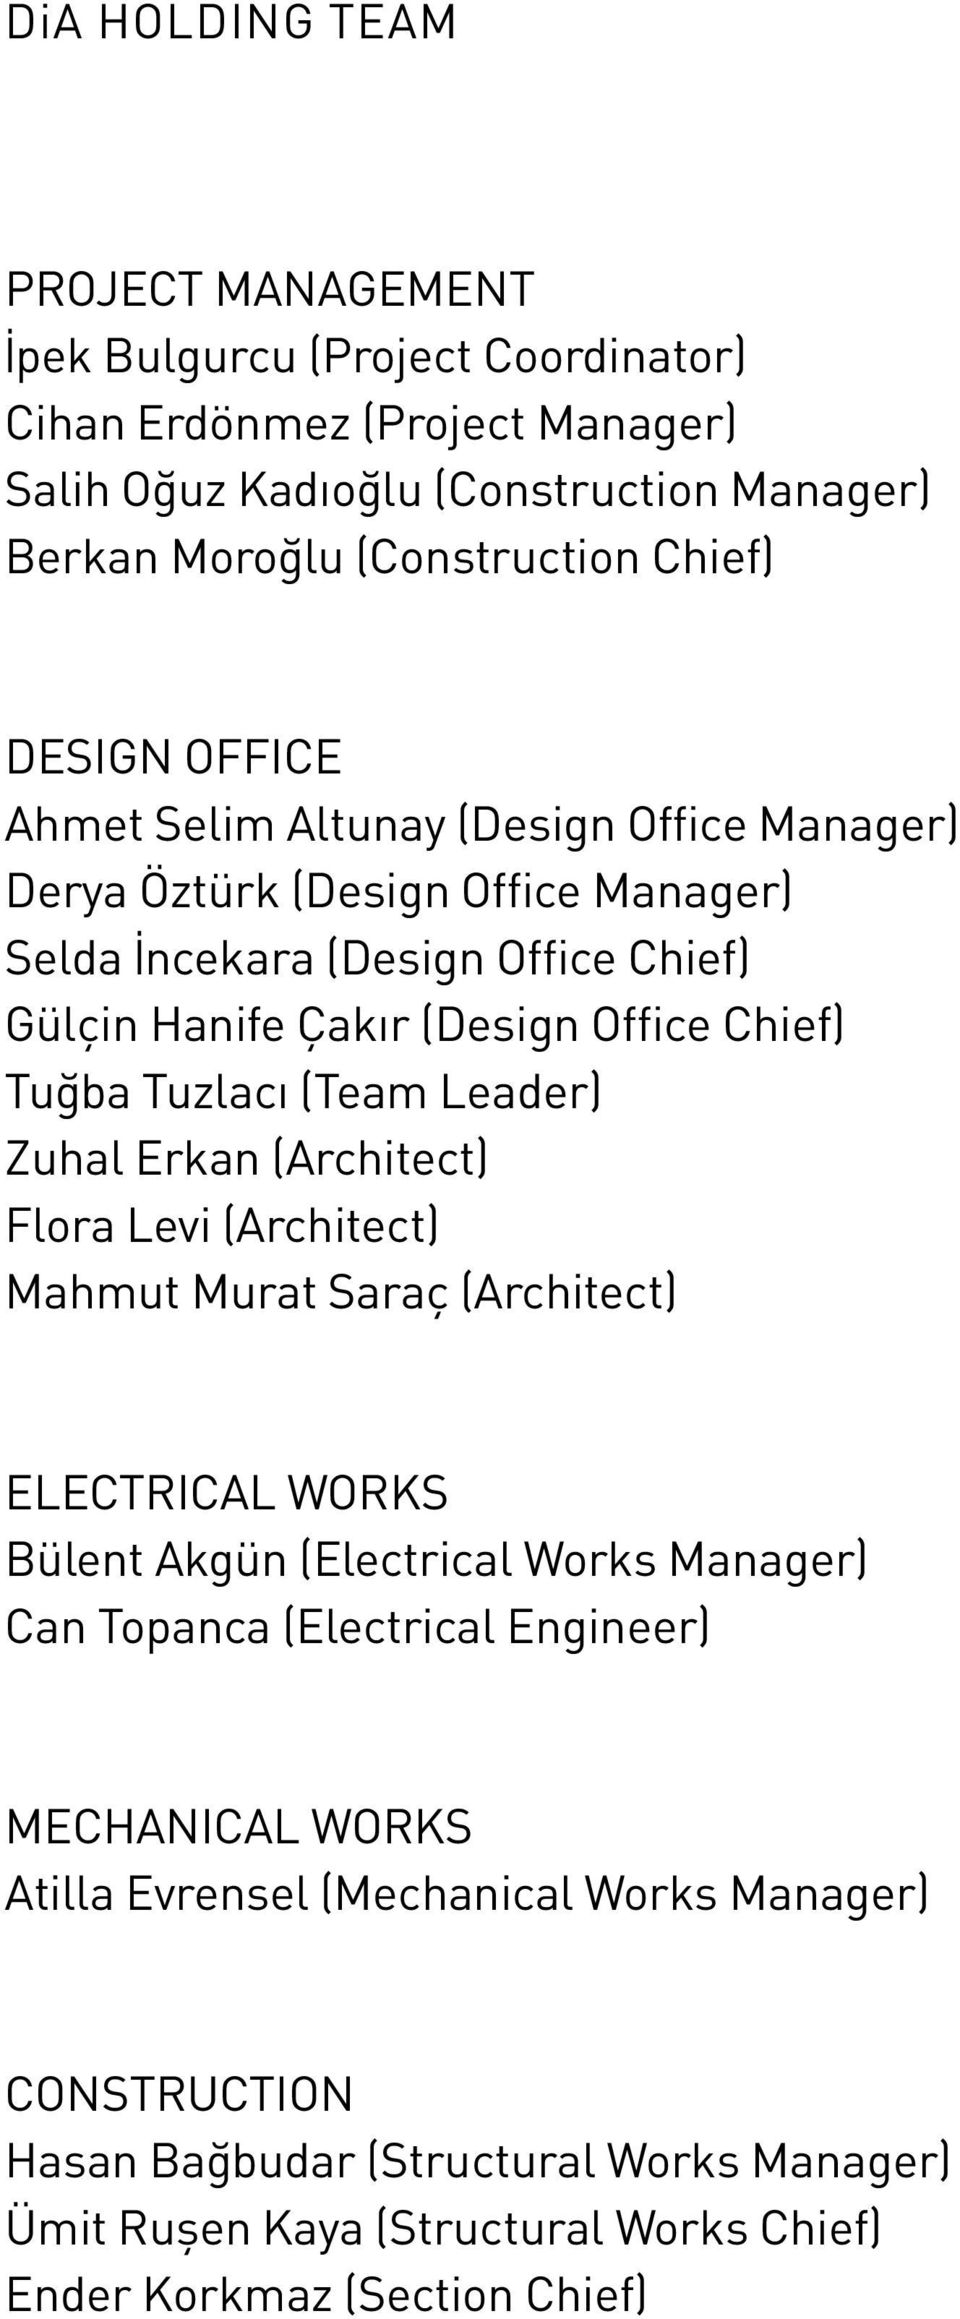 Tuzlacı (Team Leader) Zuhal Erkan (Architect) Flora Levi (Architect) Mahmut Murat Saraç (Architect) Electrical Works Bülent Akgün (Electrical Works Manager) Can Topanca (Electrical